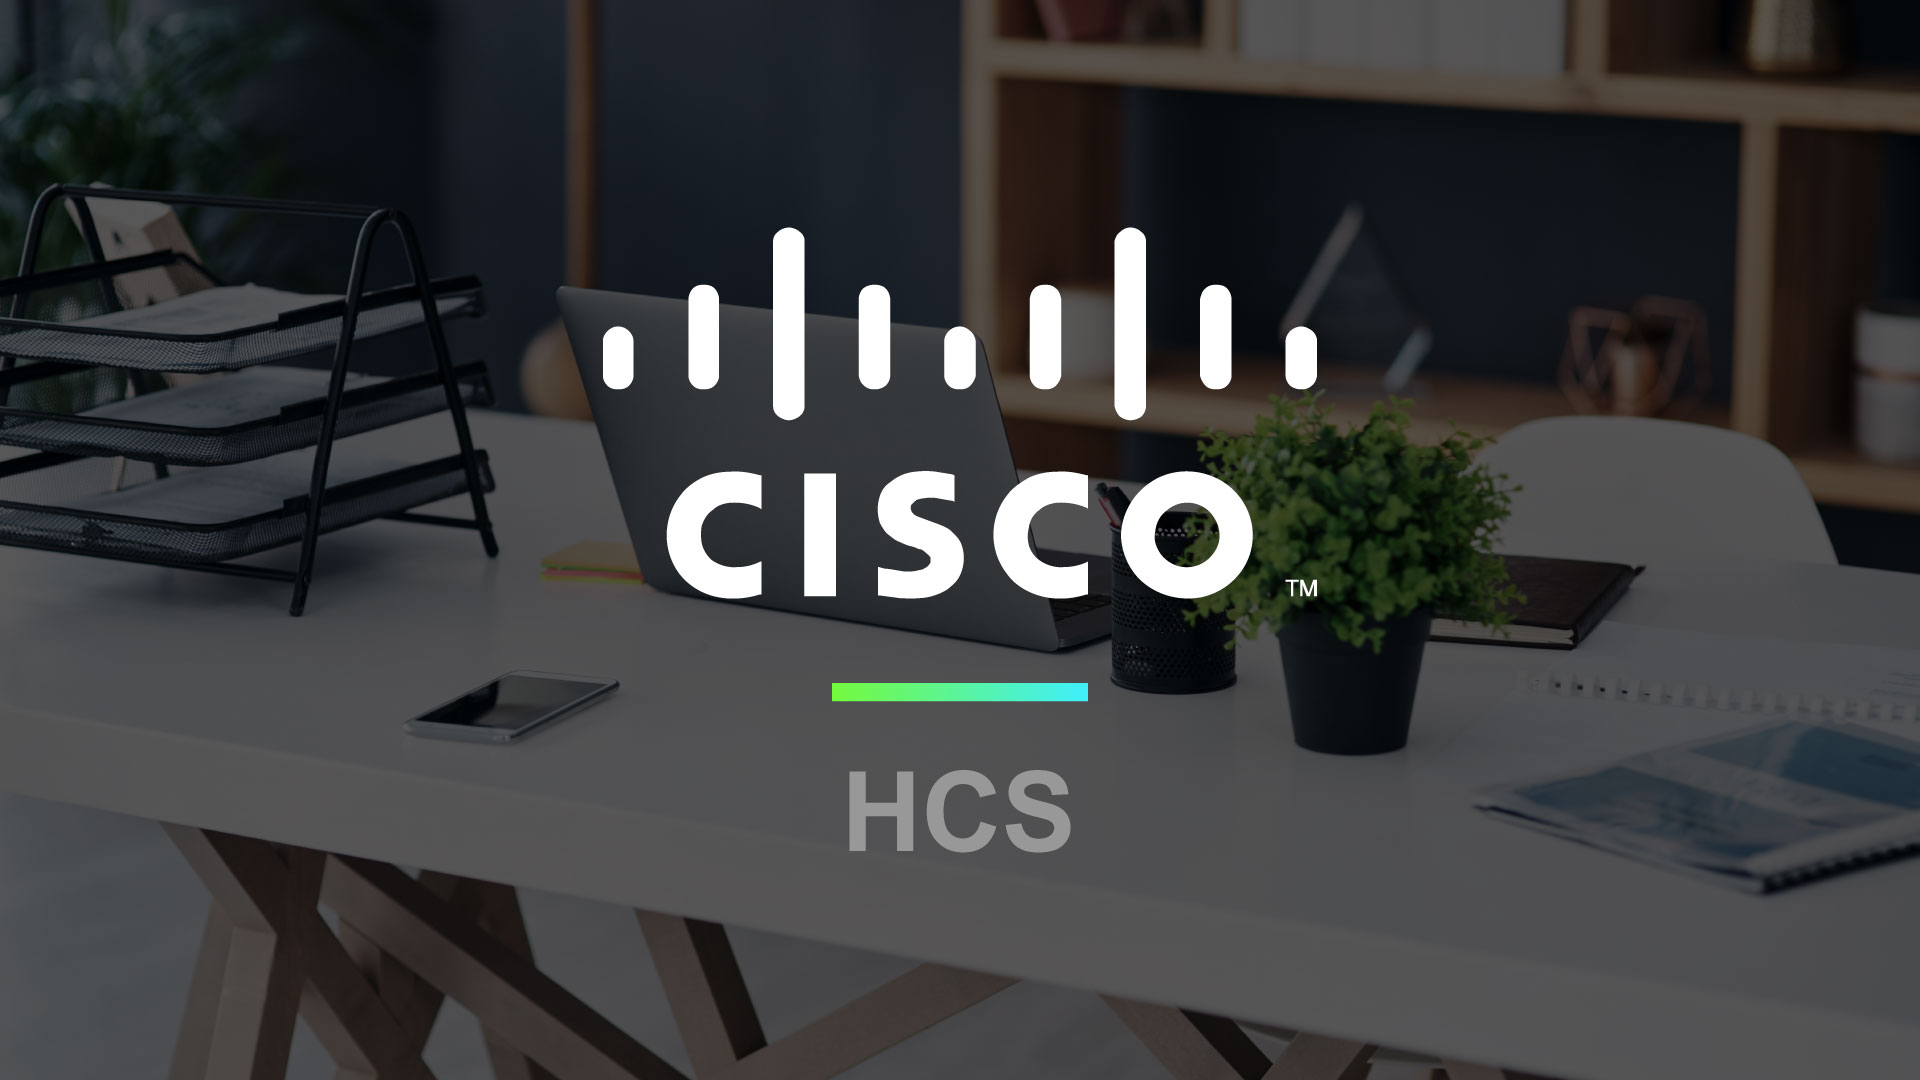 Cisco-HCS_Email(color)